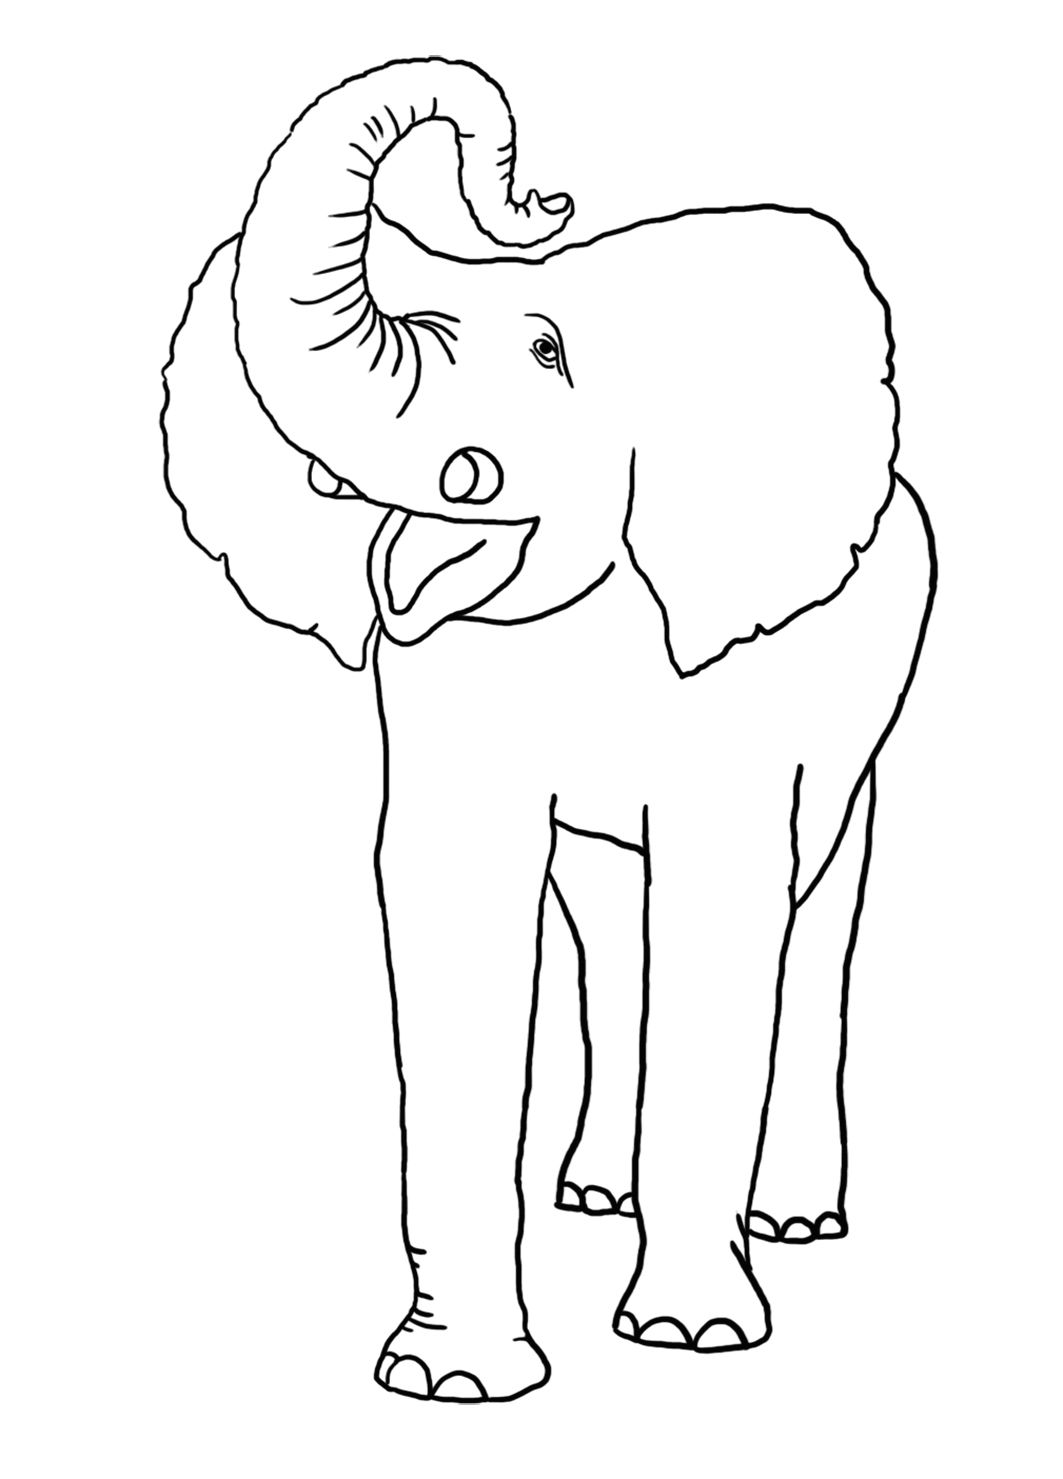 vintage drawing circus elephant for coloring